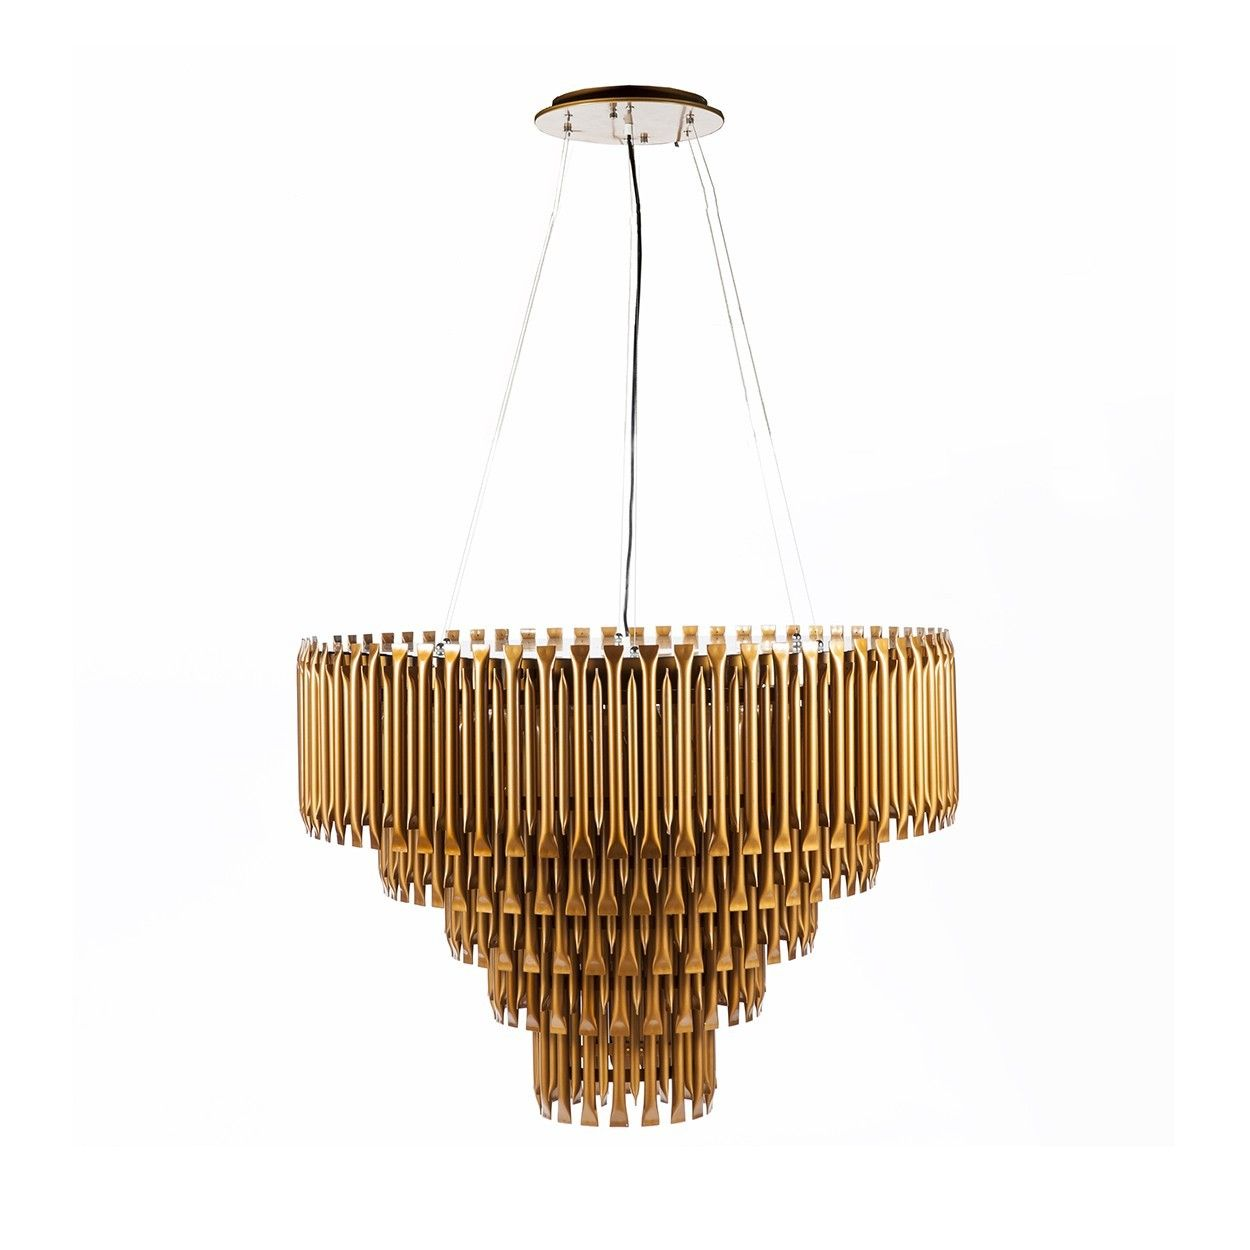 mcgrath mid century modern led chandelier l i g h t